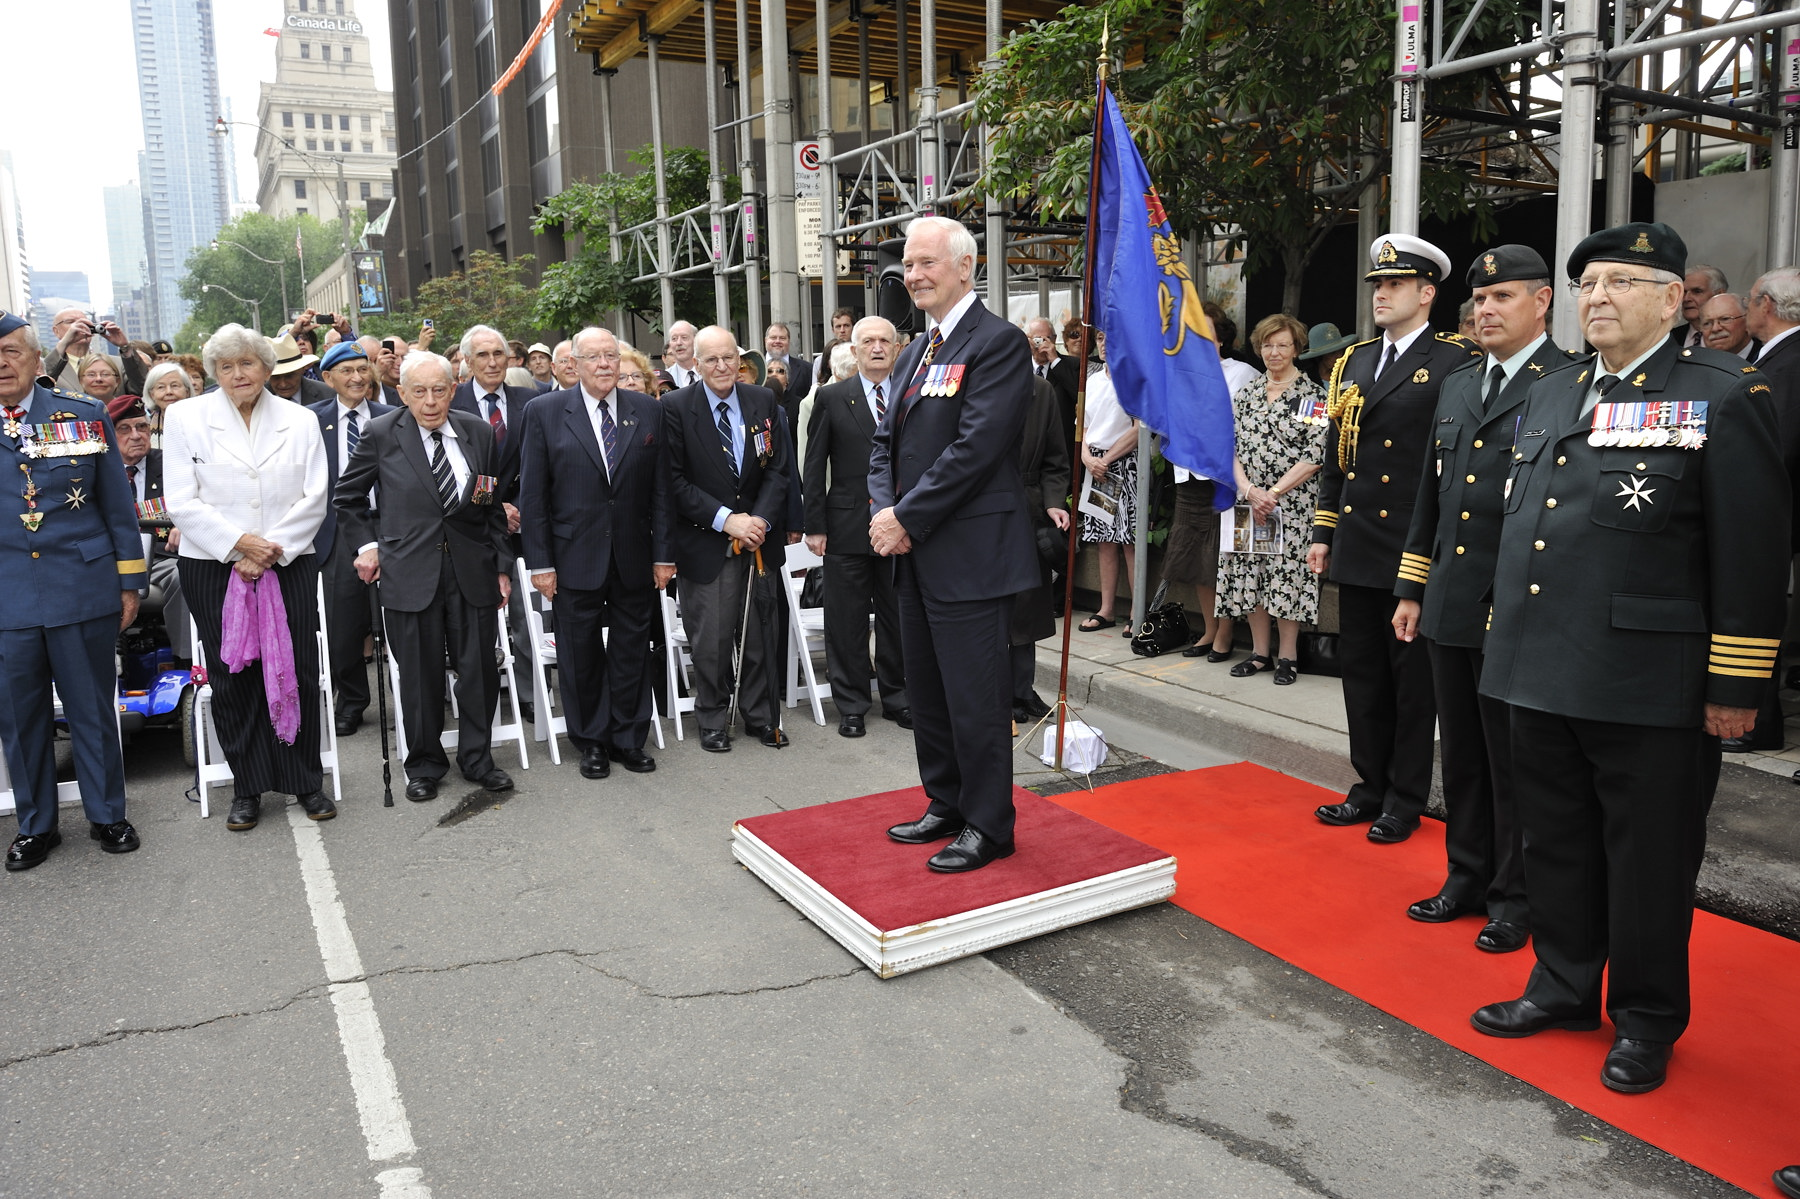 His Excellency the Right Honourable David Johnston, Governor General and Commander-in-Chief of Canada, unveiled the cornerstone for a new building housing the Royal Canadian Military Institute (RCMI), during a military ceremony that took place in Toronto, on Saturday, June 9, 2012.